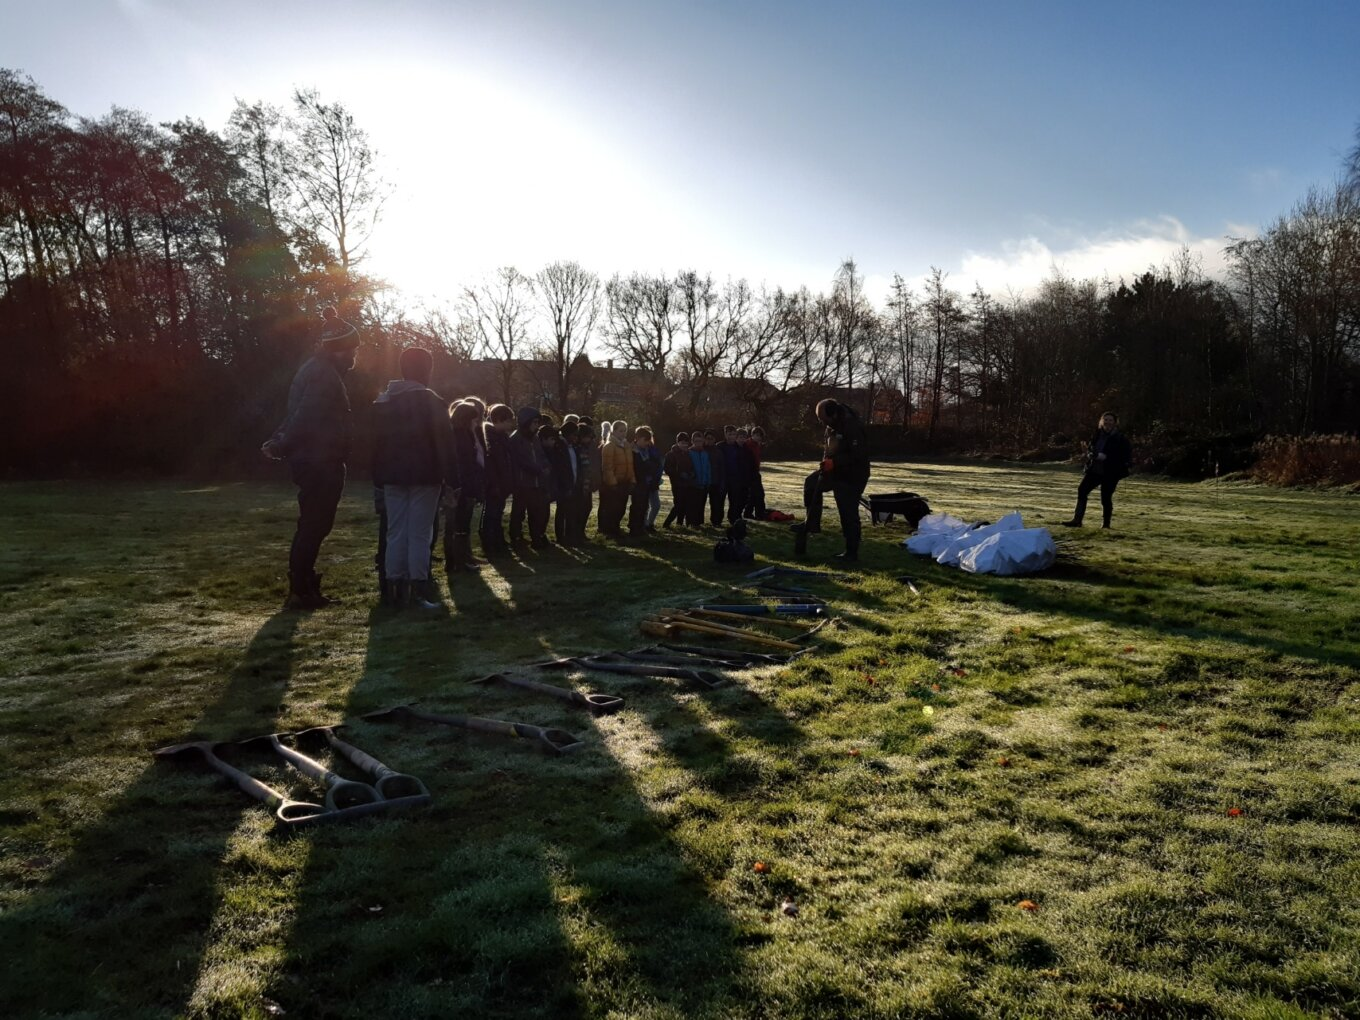 Treevitalise Pupils from Dore Primary School learning about tree planting techniques with the Sheffield Community Forestry team last December